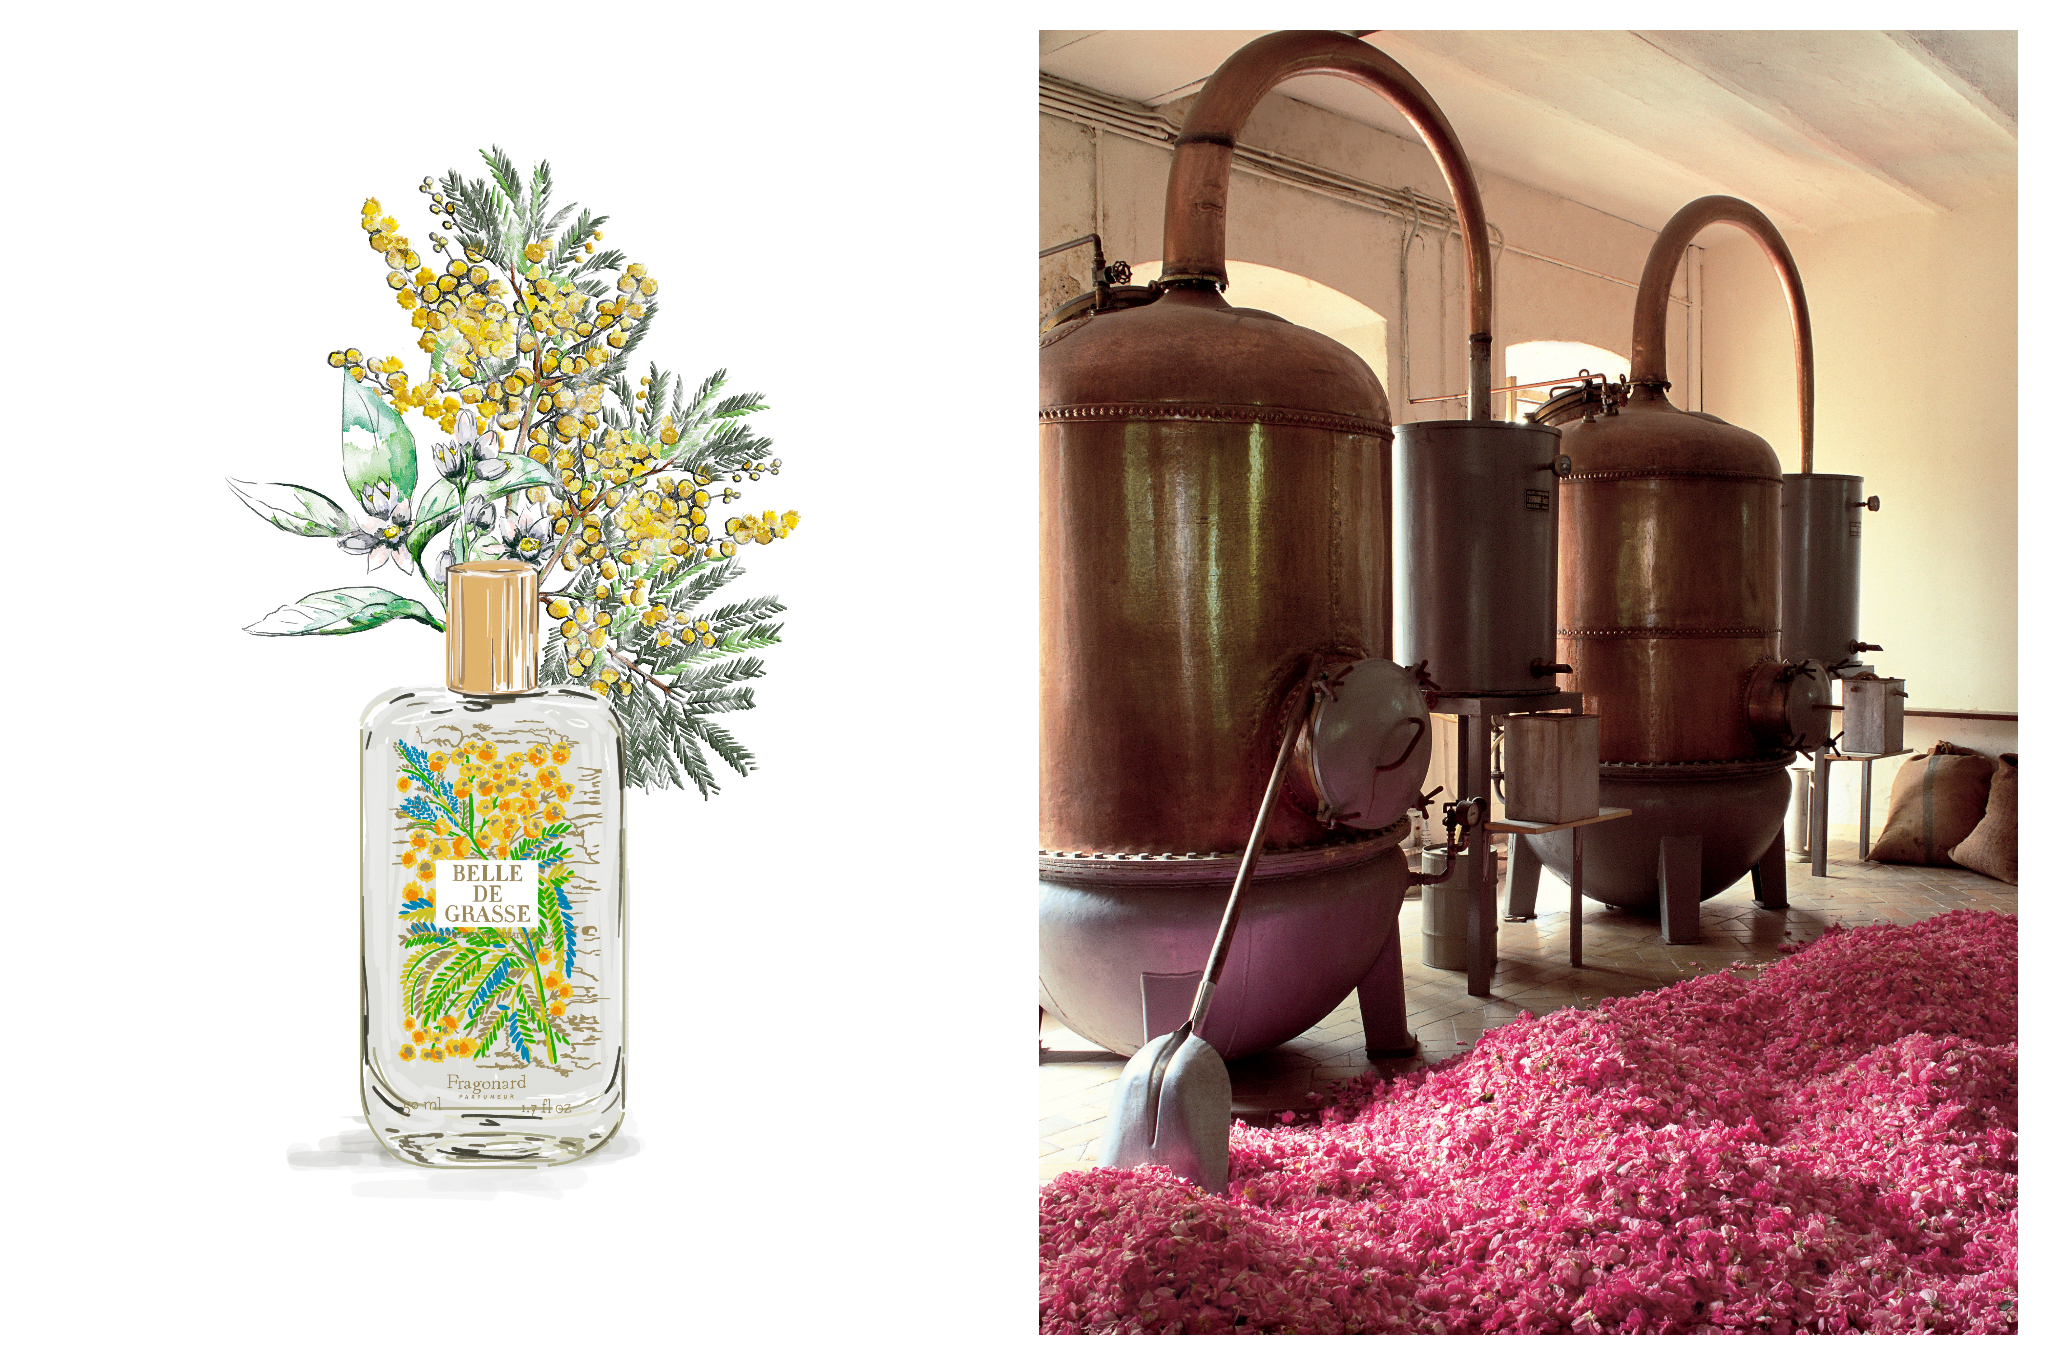 Left: Artwork of green and yellow lowers and a bottle of Fragonard's Belle de Grasse perfume, Right: Copper stills sit next to each other, ready to distill the large pile of pink rose petals in front of them